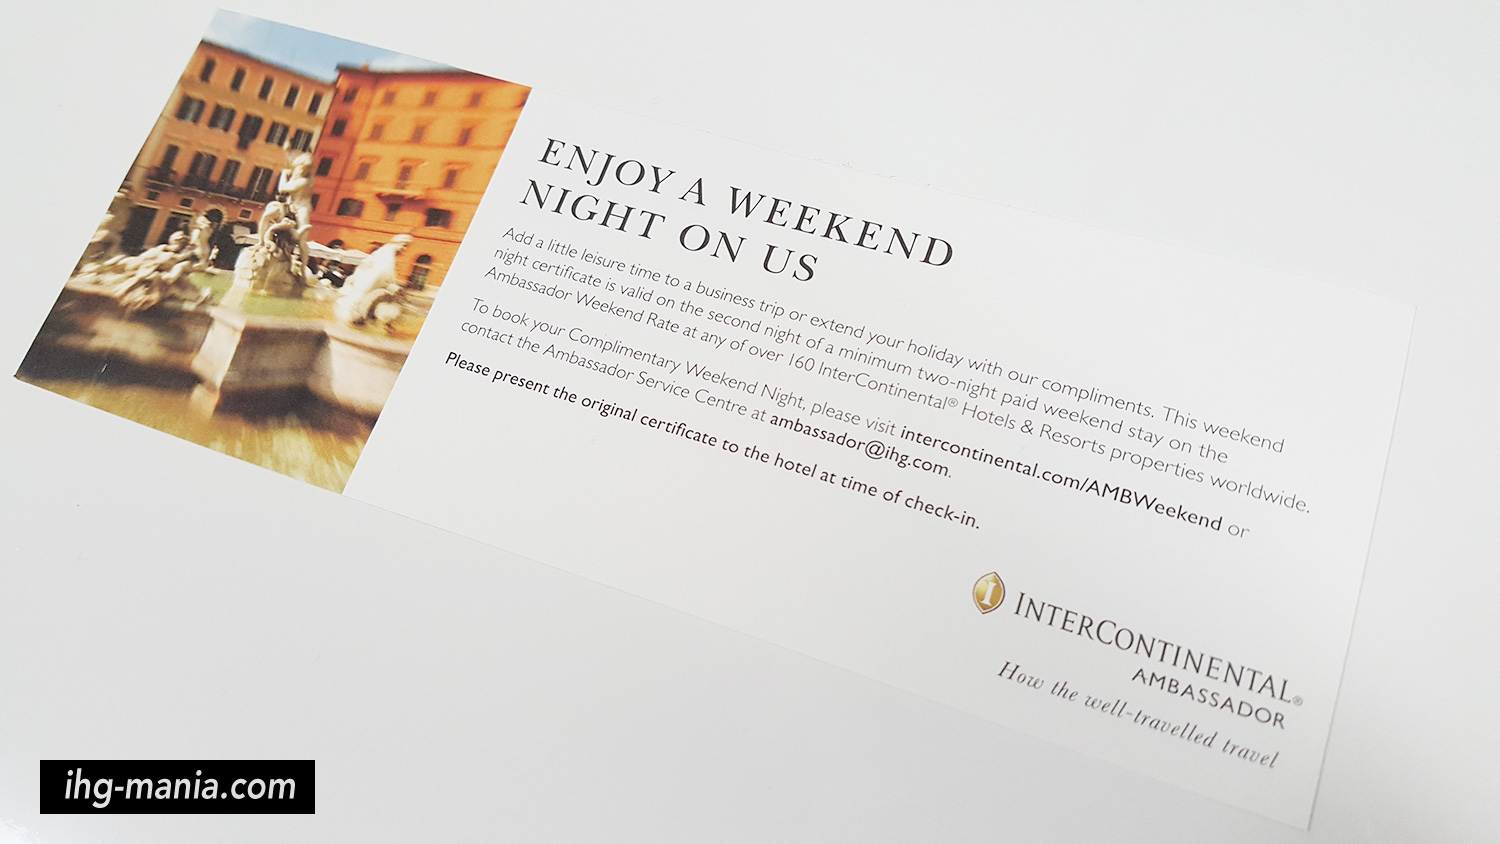 interconti_ambassoder_weekend_ticket